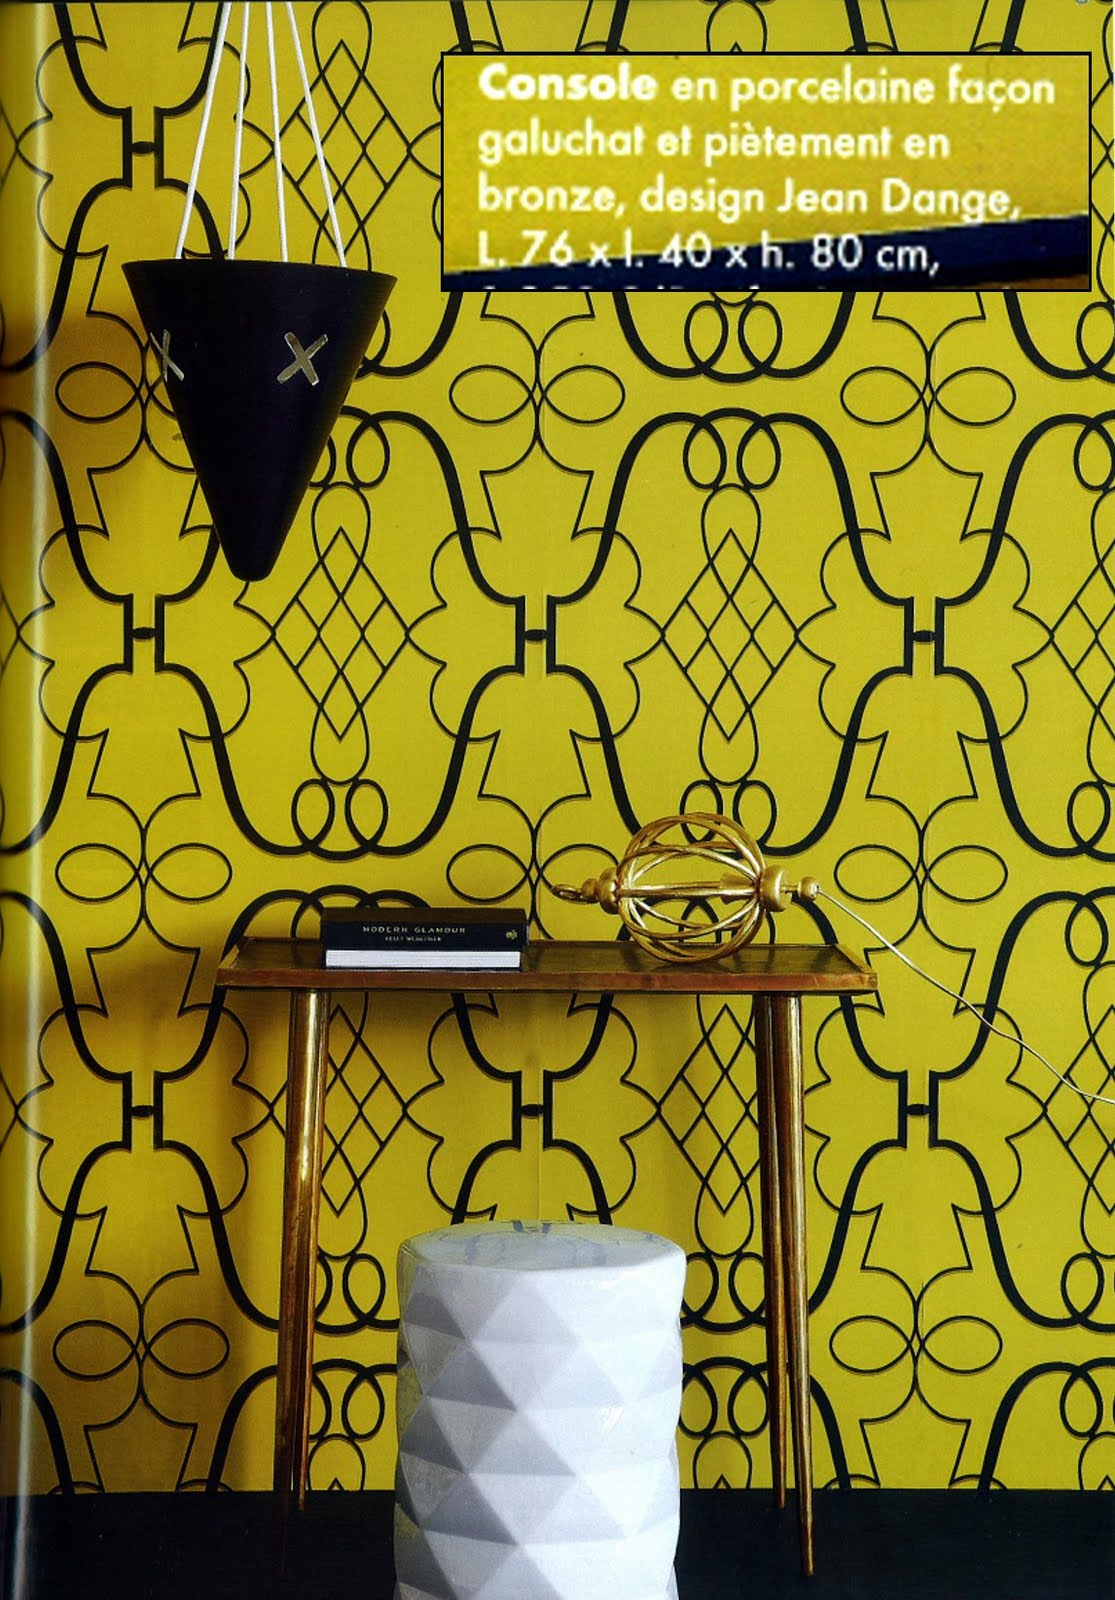 Elle Decoration France Jean Dange Elle Decoration May 2010 Mai 2010